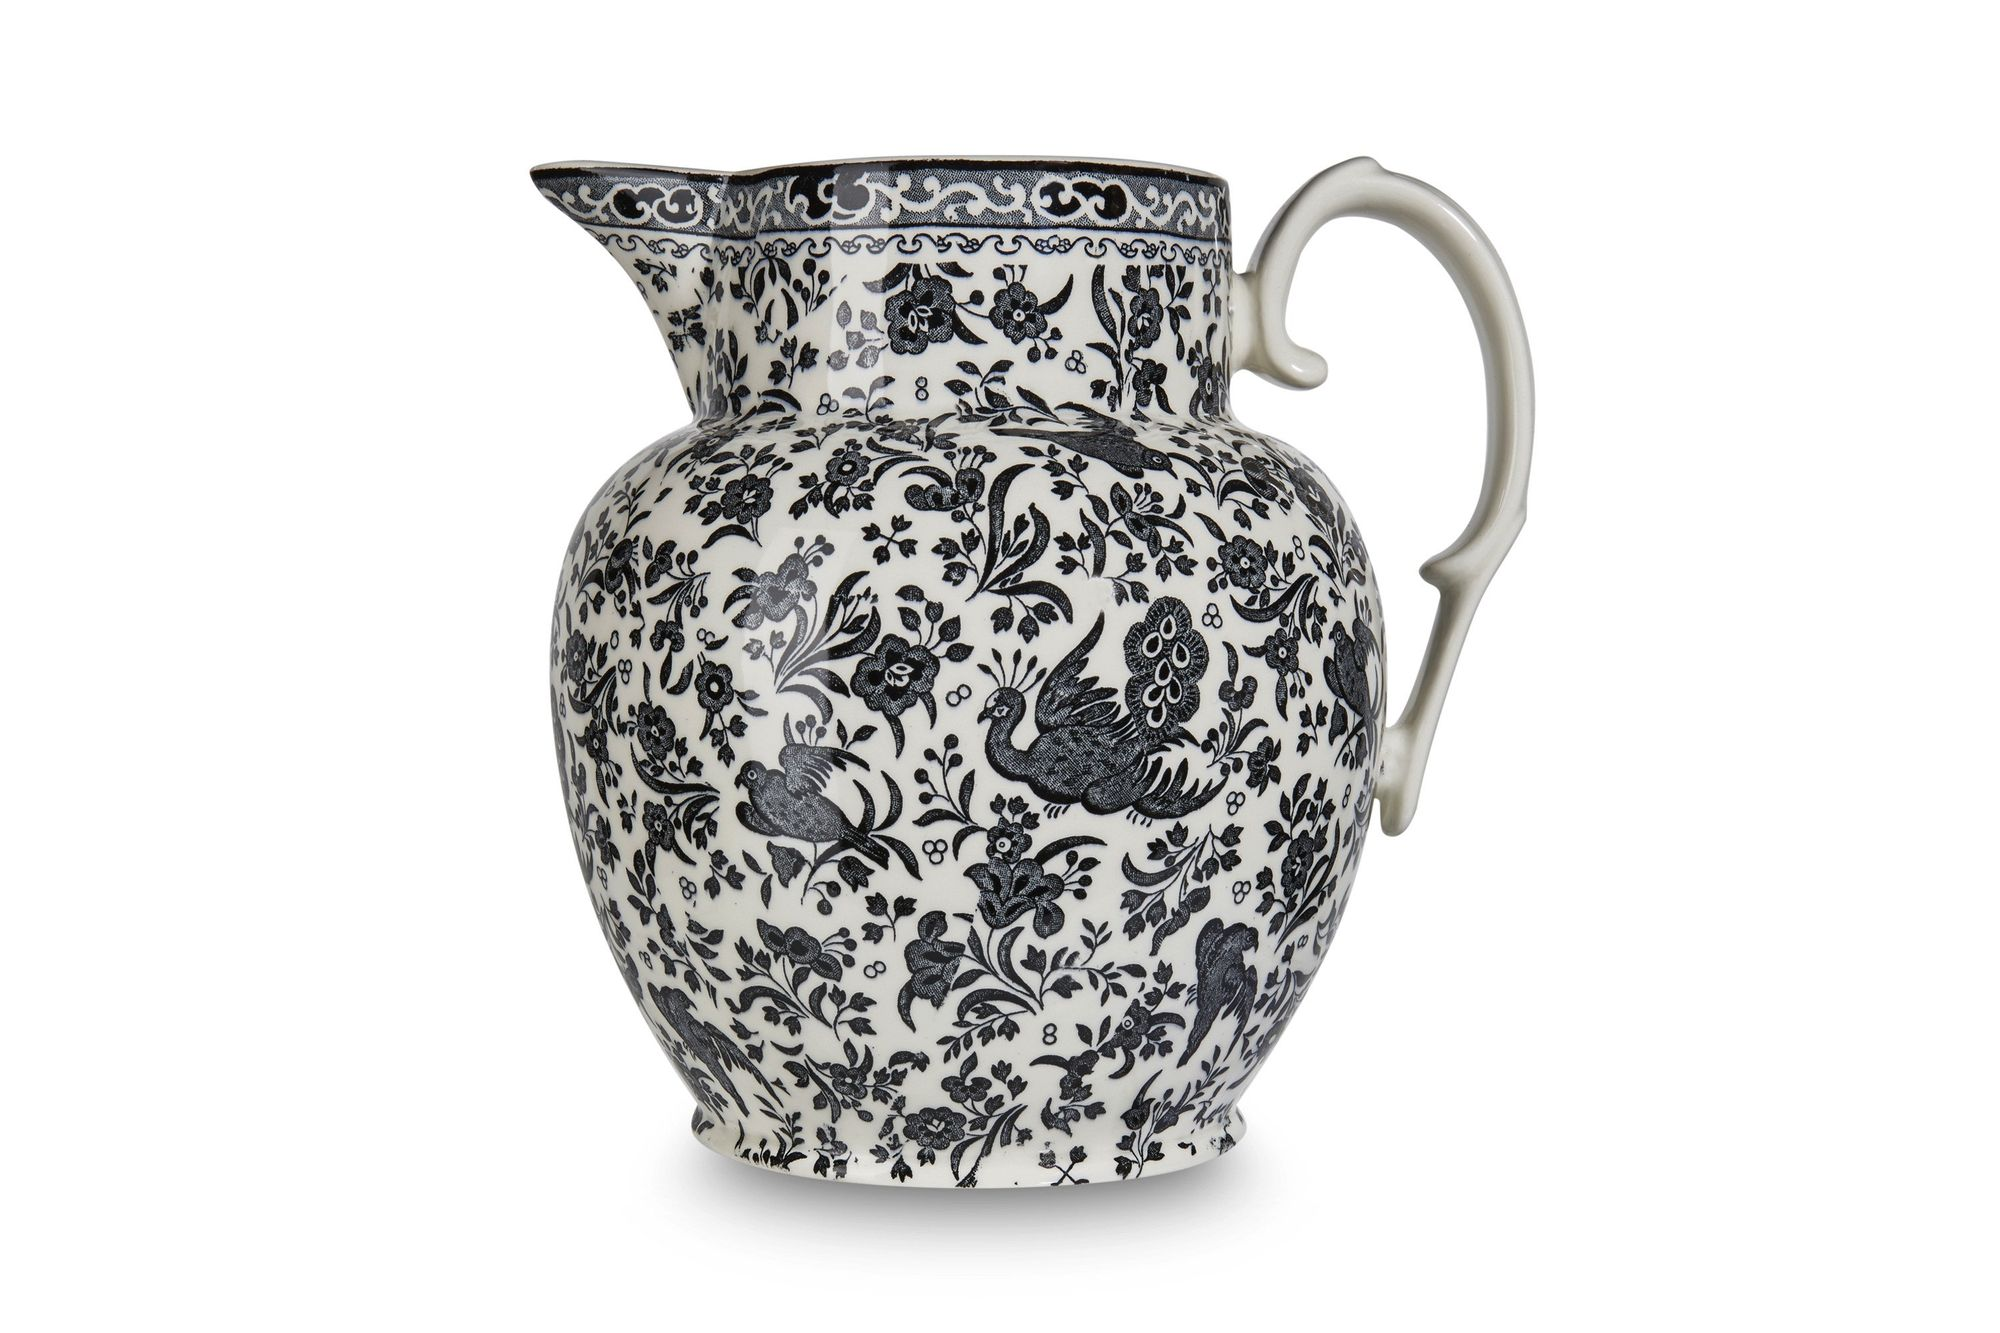 Burleigh Black Regal Peacock Jug Etruscan Jug thumb 1